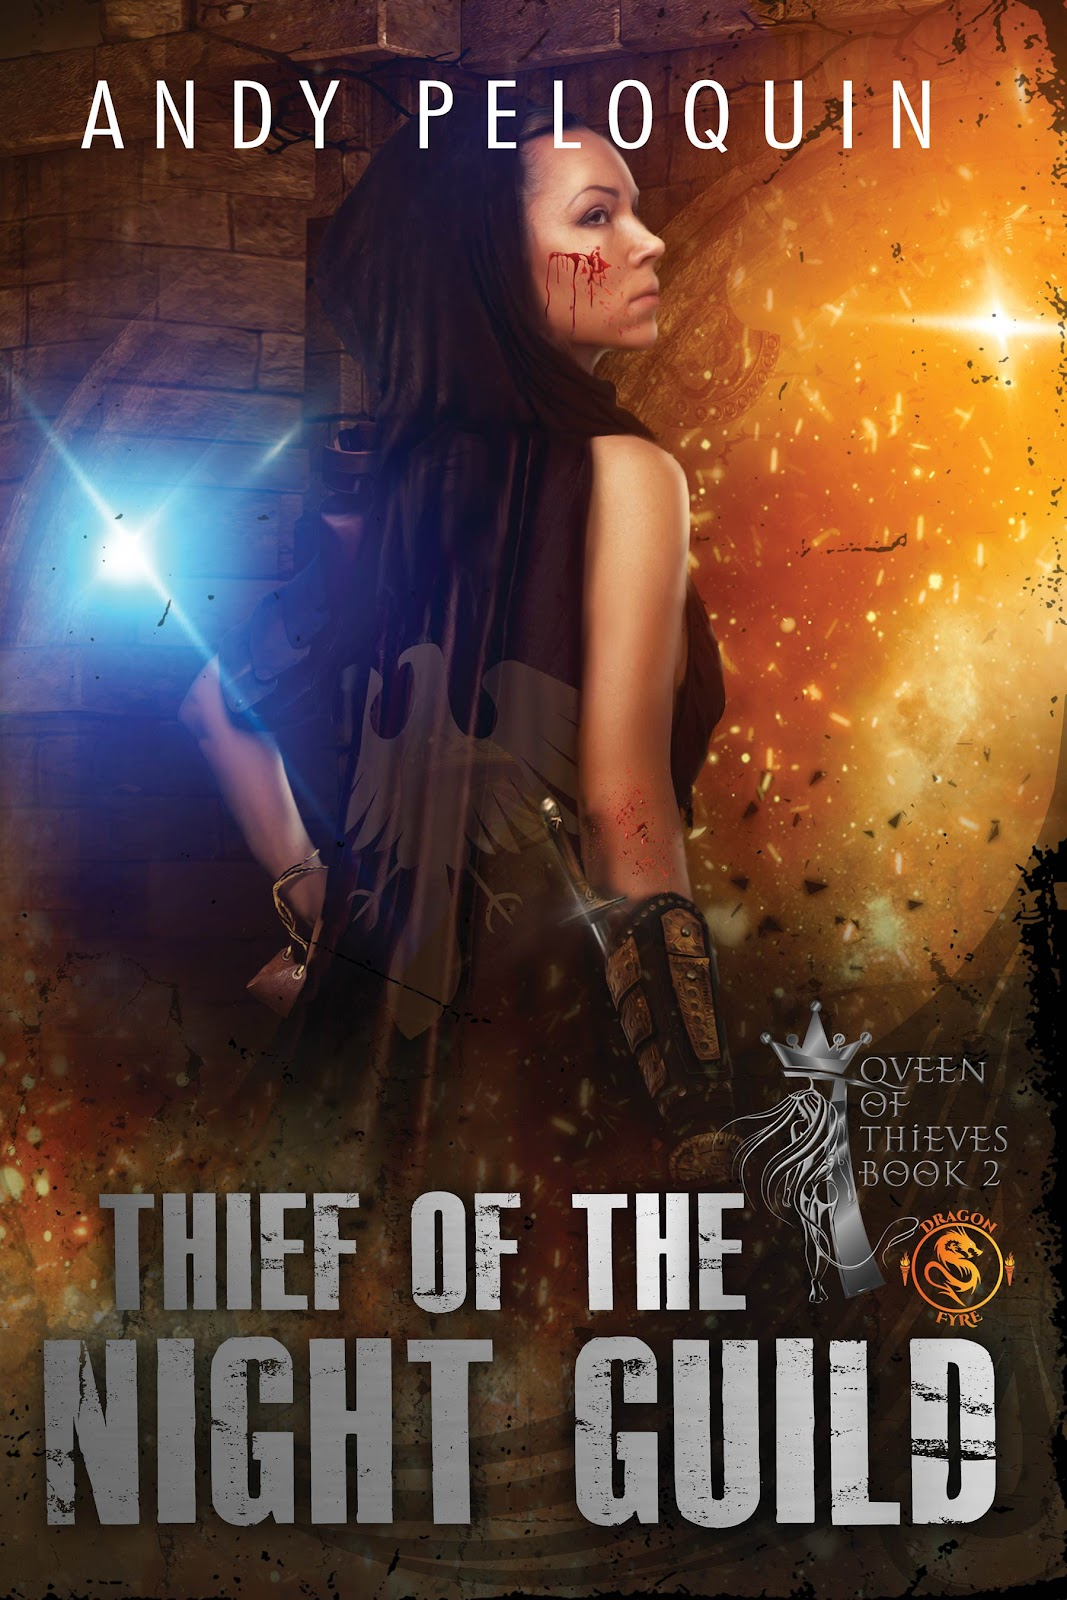 Thief of the Night Guild Cover.jpg